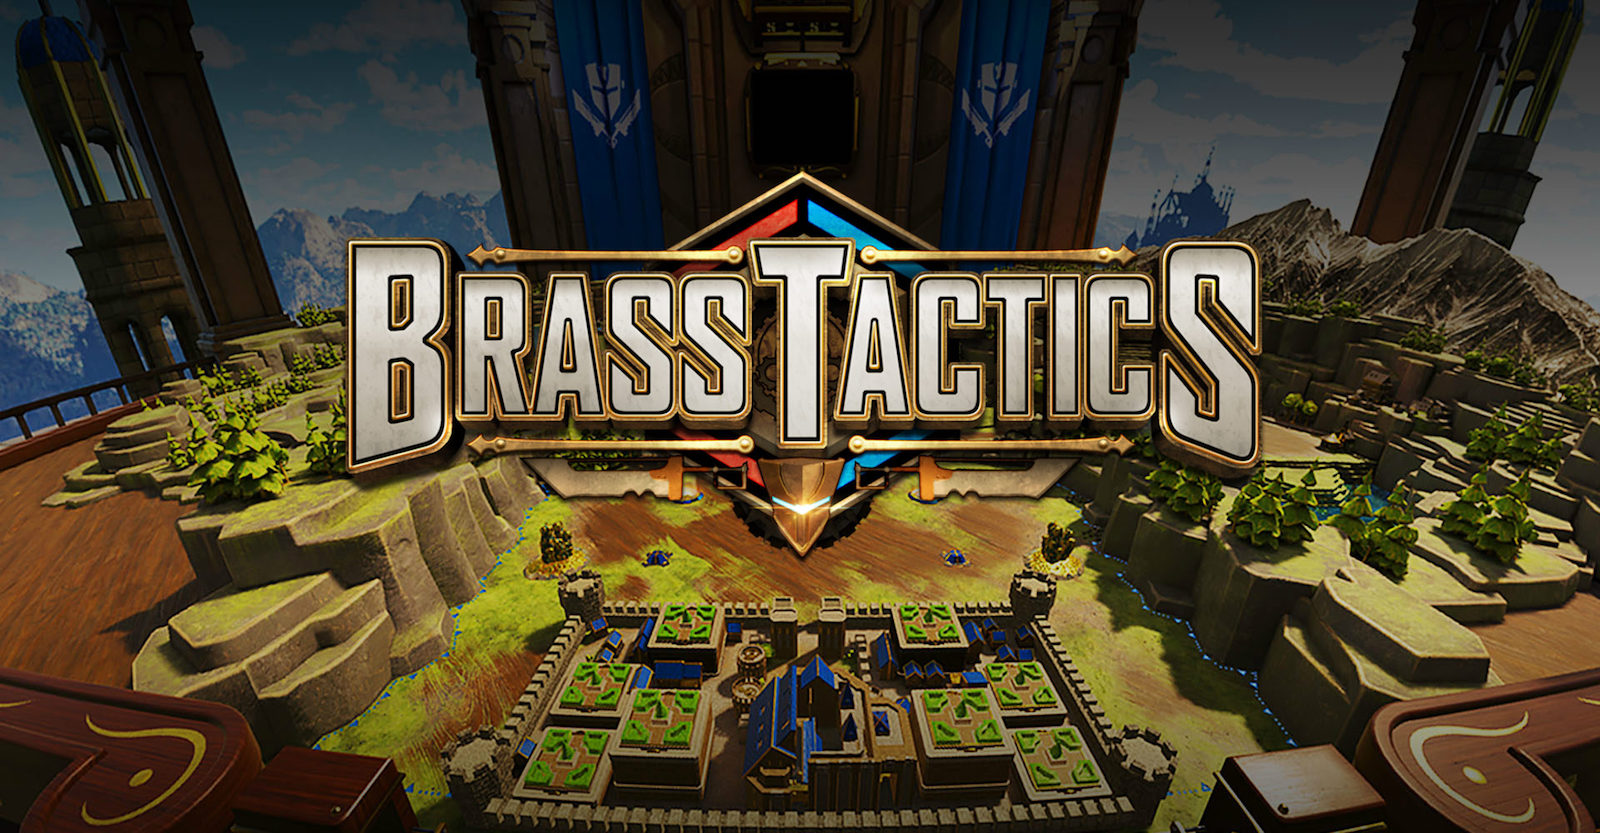 Oculus Announces $28,000 In Prizes On Brass Tactics As A Part Of Their 2 Year Anniversary Event